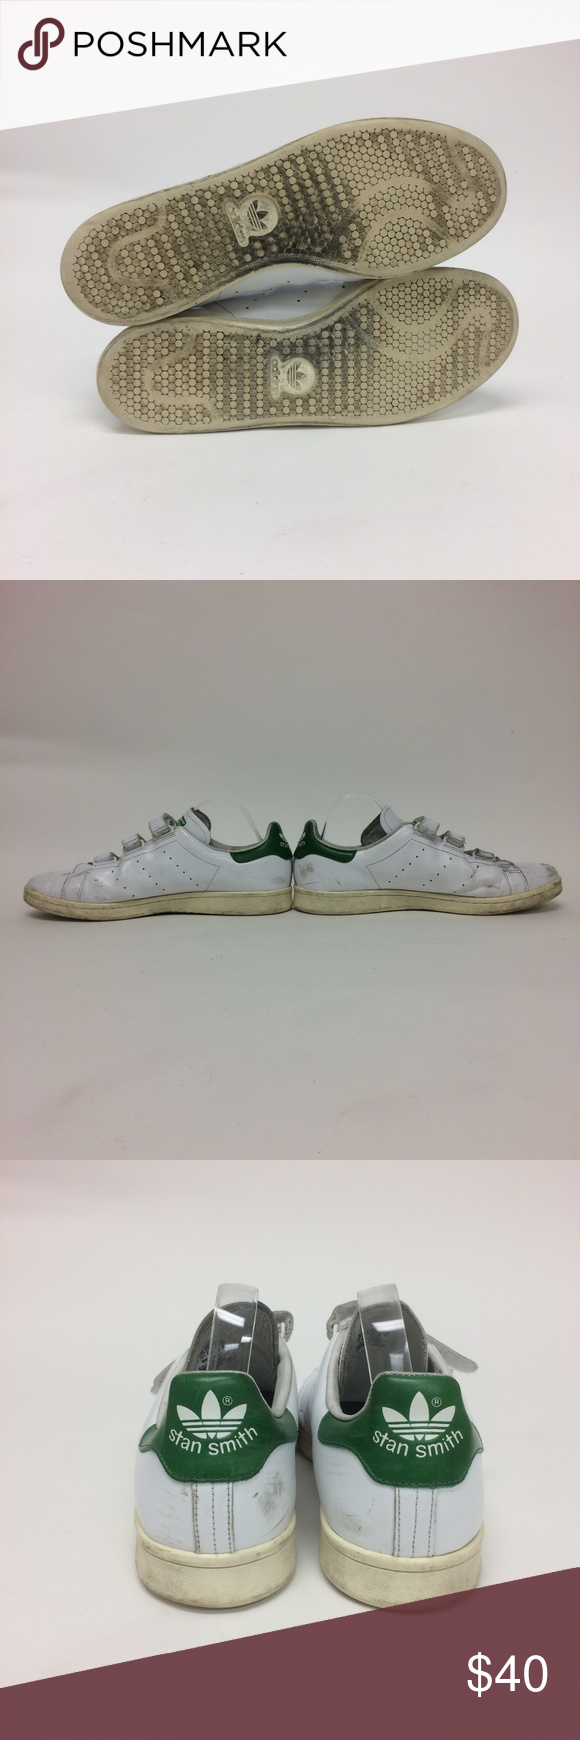 reputable site 671d8 e7660 Adidas Originals Stan Smith White Velcro Sneakers In good used condition.  Has few signs of wear as seen in pictures. adidas Shoes Sneakers